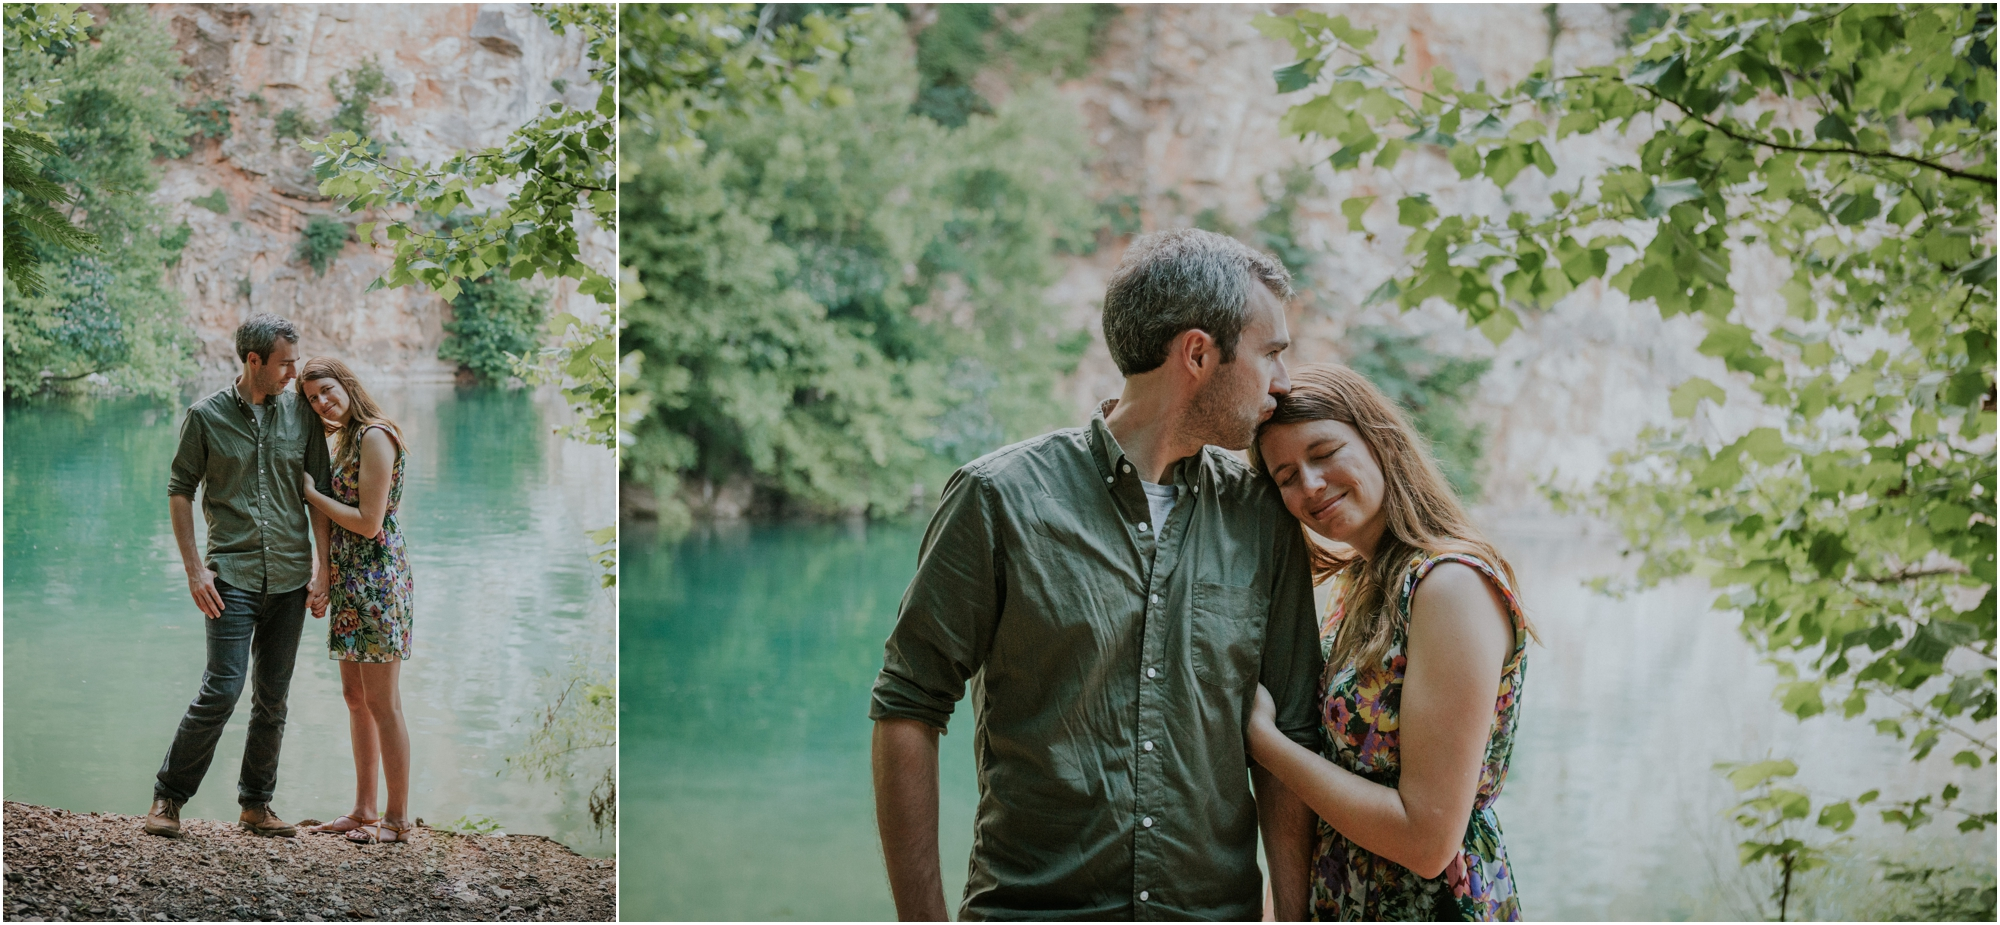 meads-quarry-ijams-nature-center-knoxville-tennessee-engagement-session-summer-northeast-tn-adventurous-outdoors-lake-katy-sergent_0024.jpg